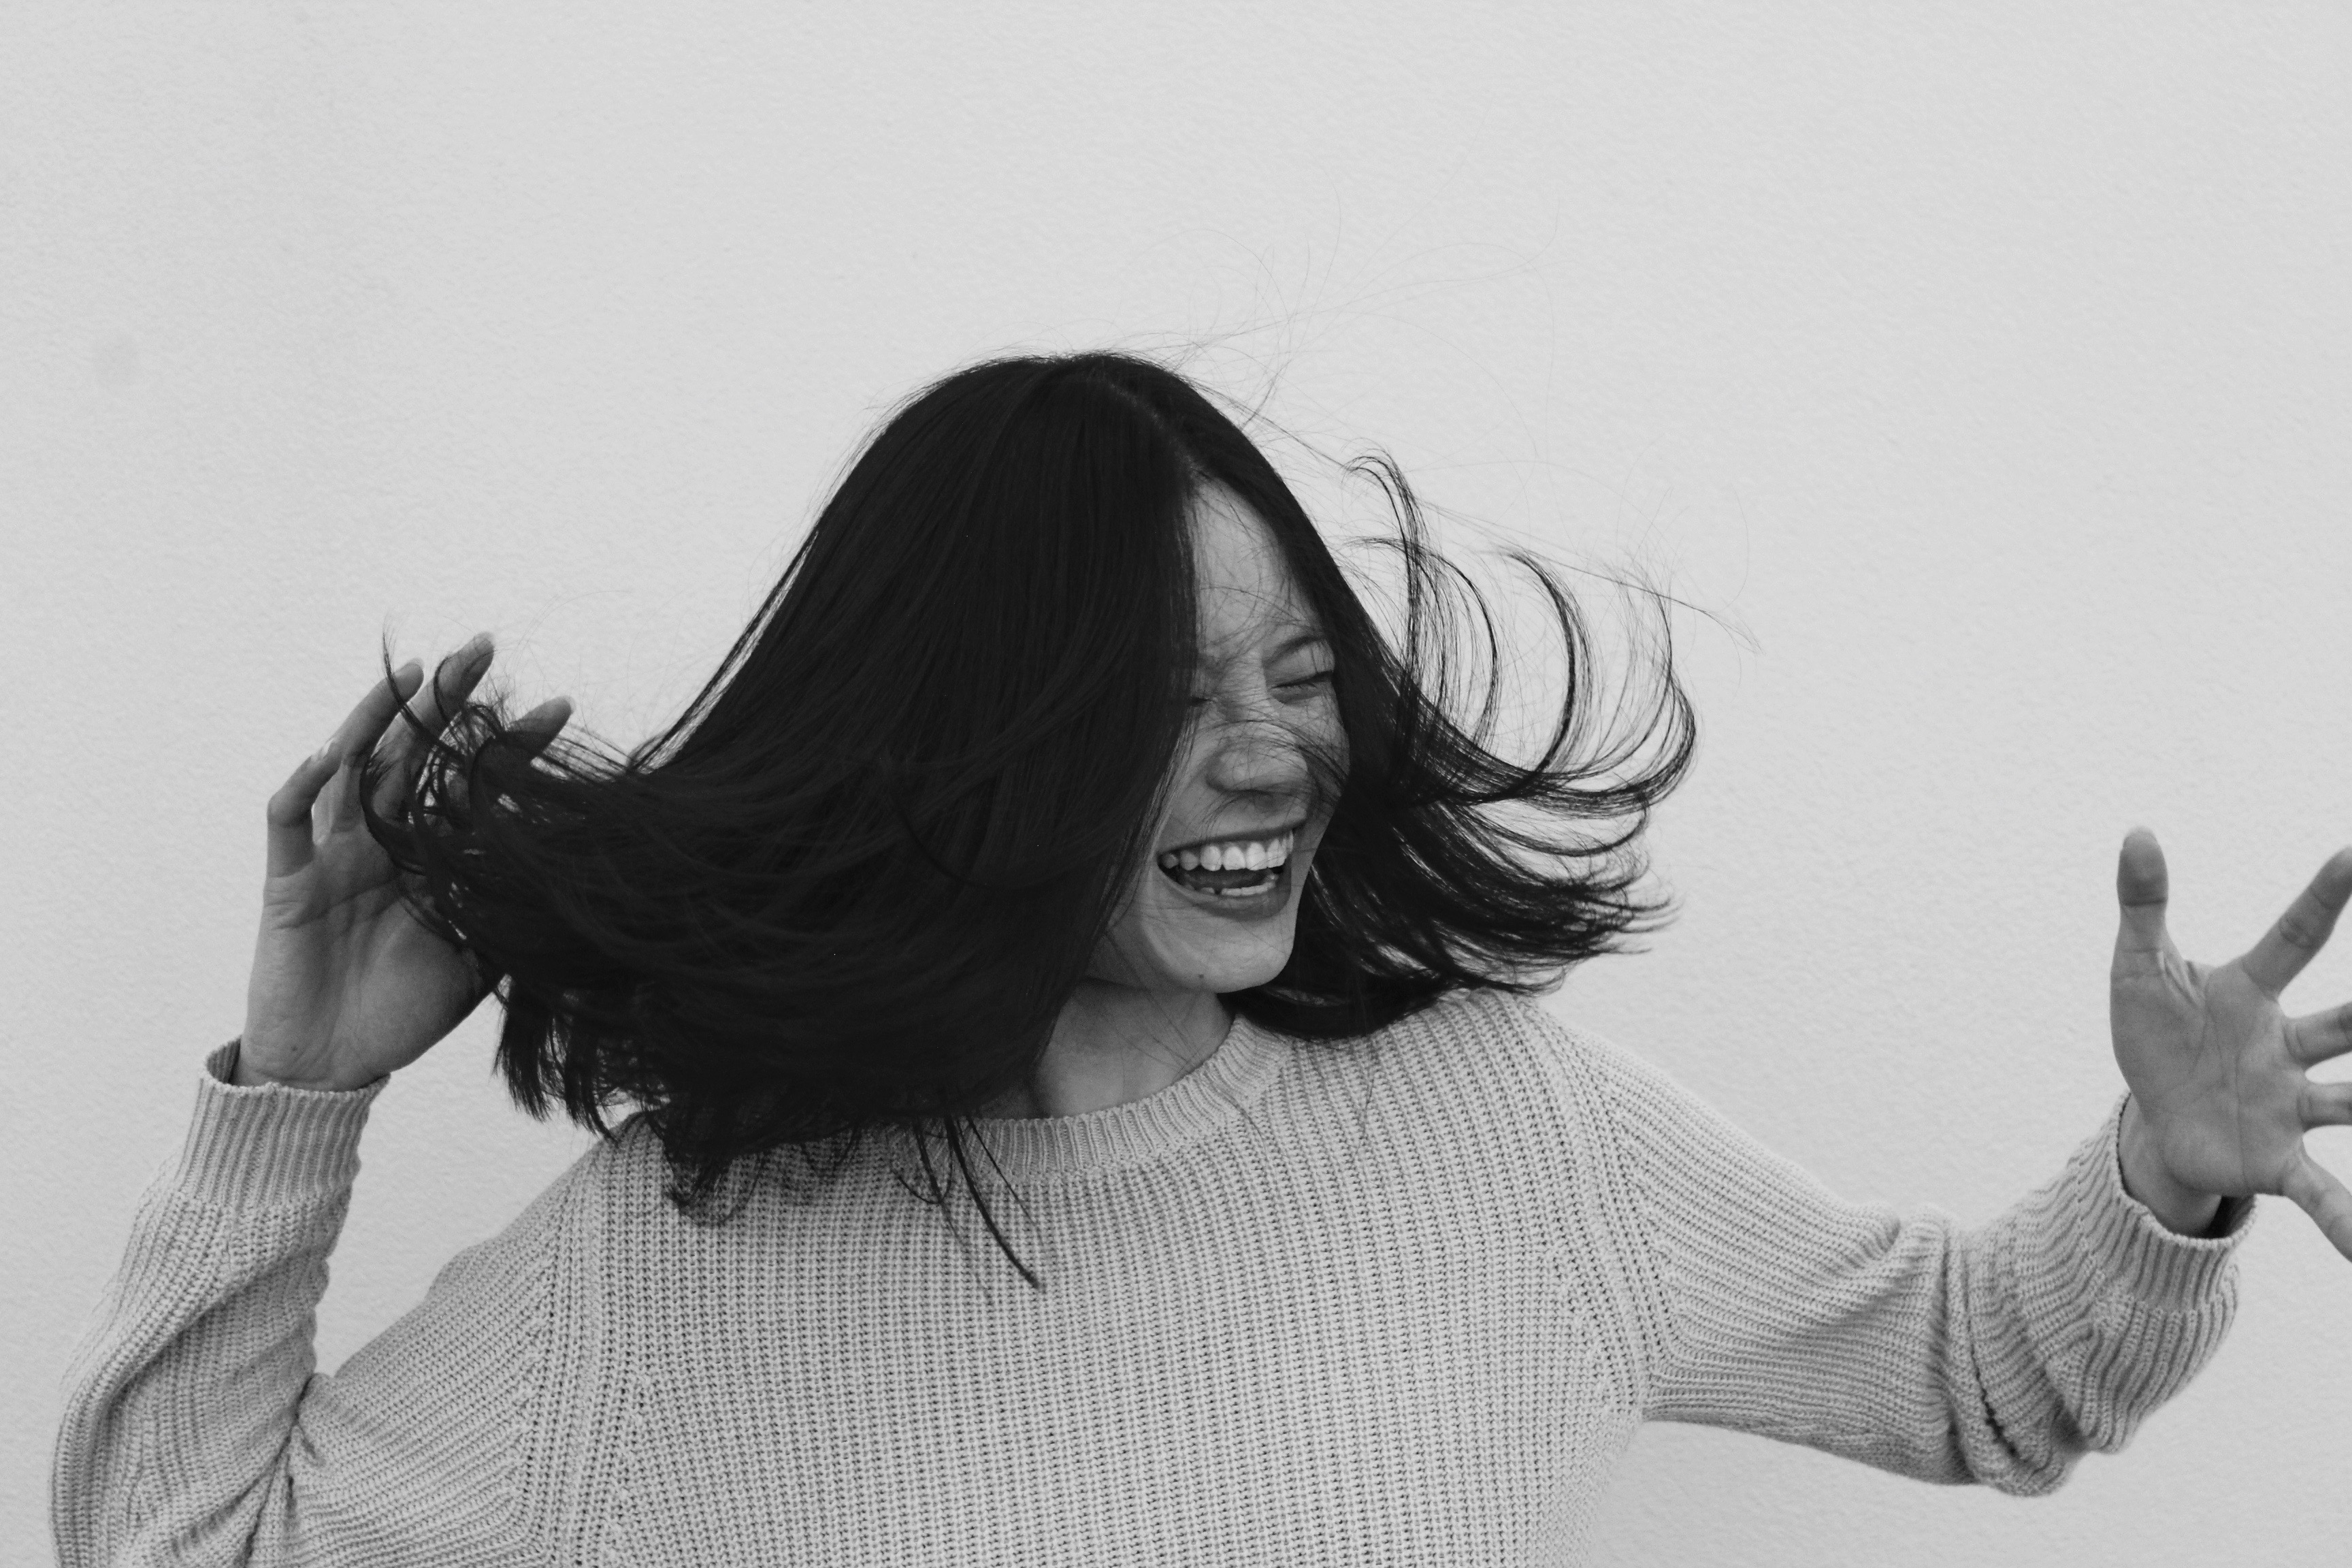 grayscale photo of woman flicking hair